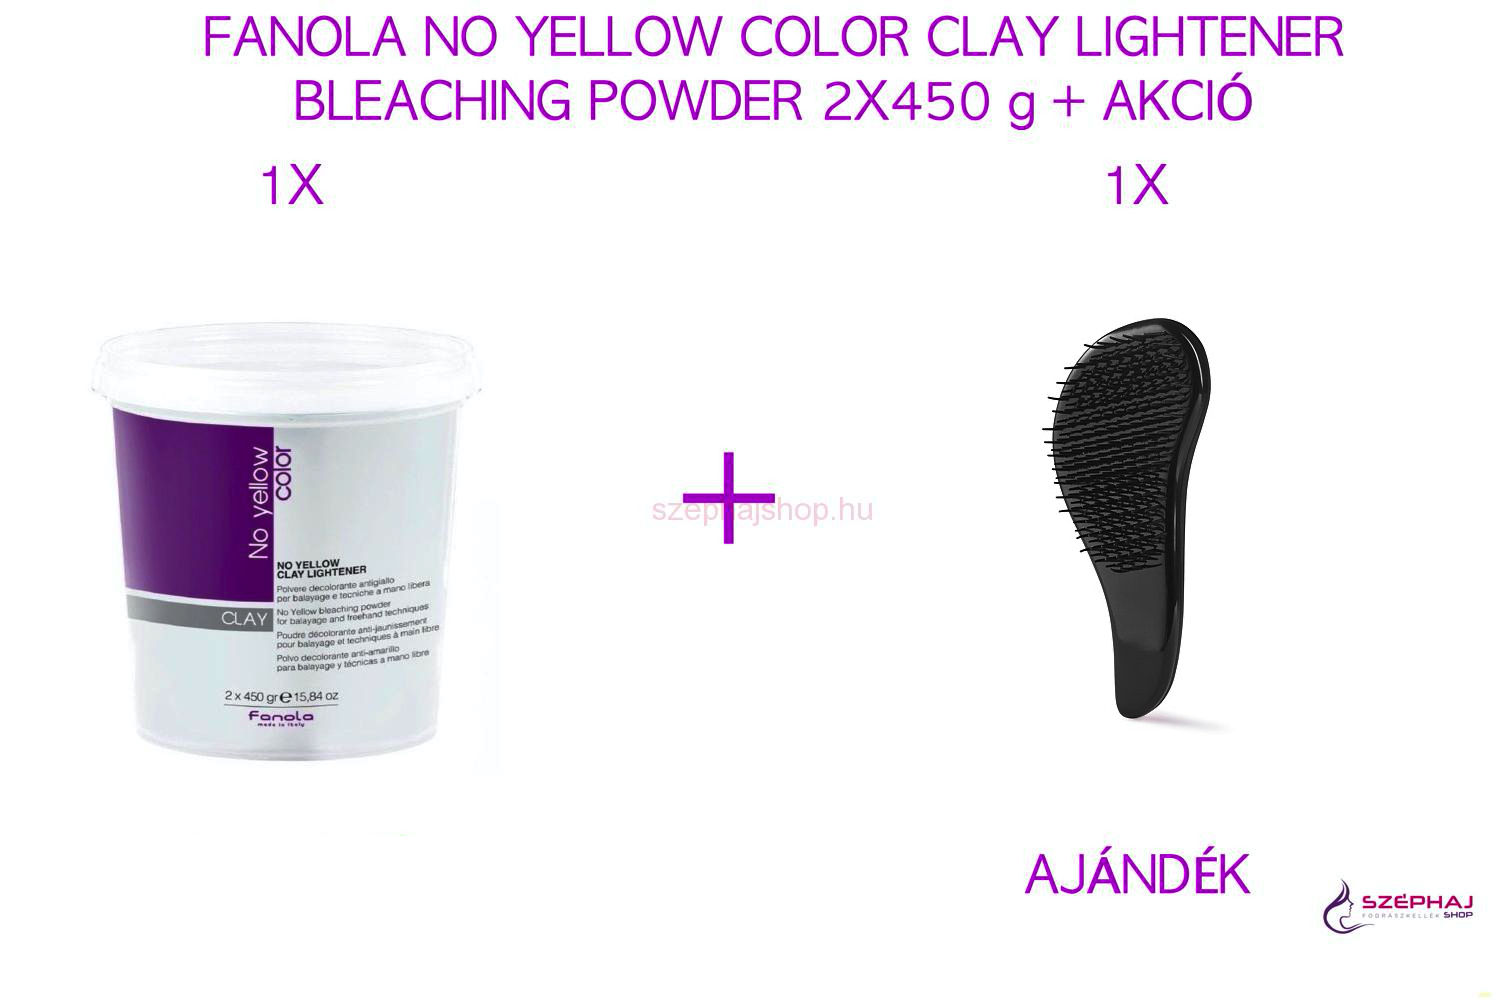 FANOLA NO YELLOW COLOR CLAY LIGHTENER BLEACHING POWDER 2X450 g + AKCIÓ